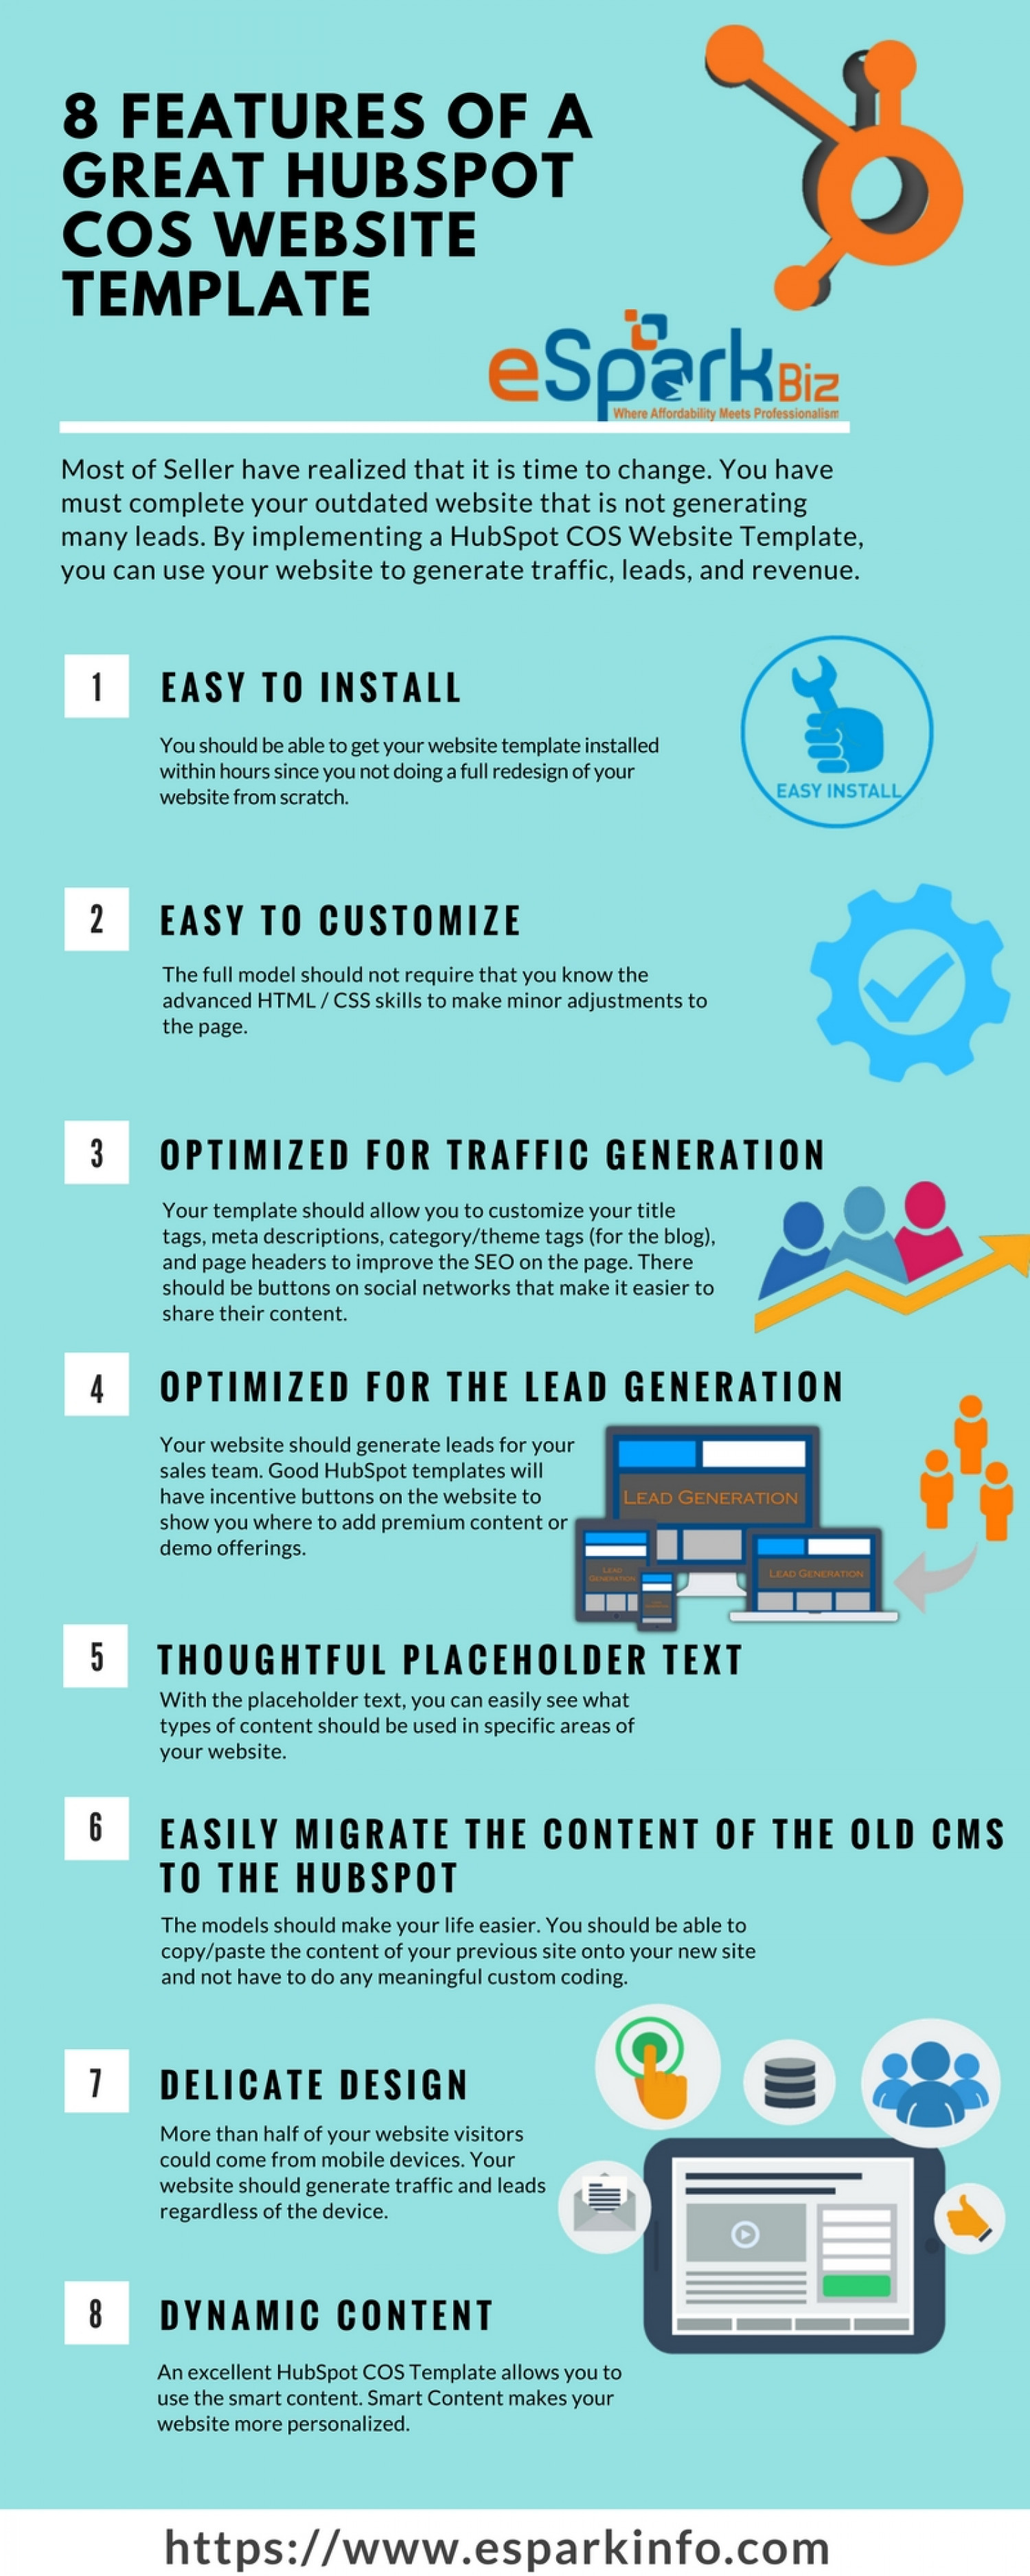 Features of a Great HubSpot COS Website Templates Infographic